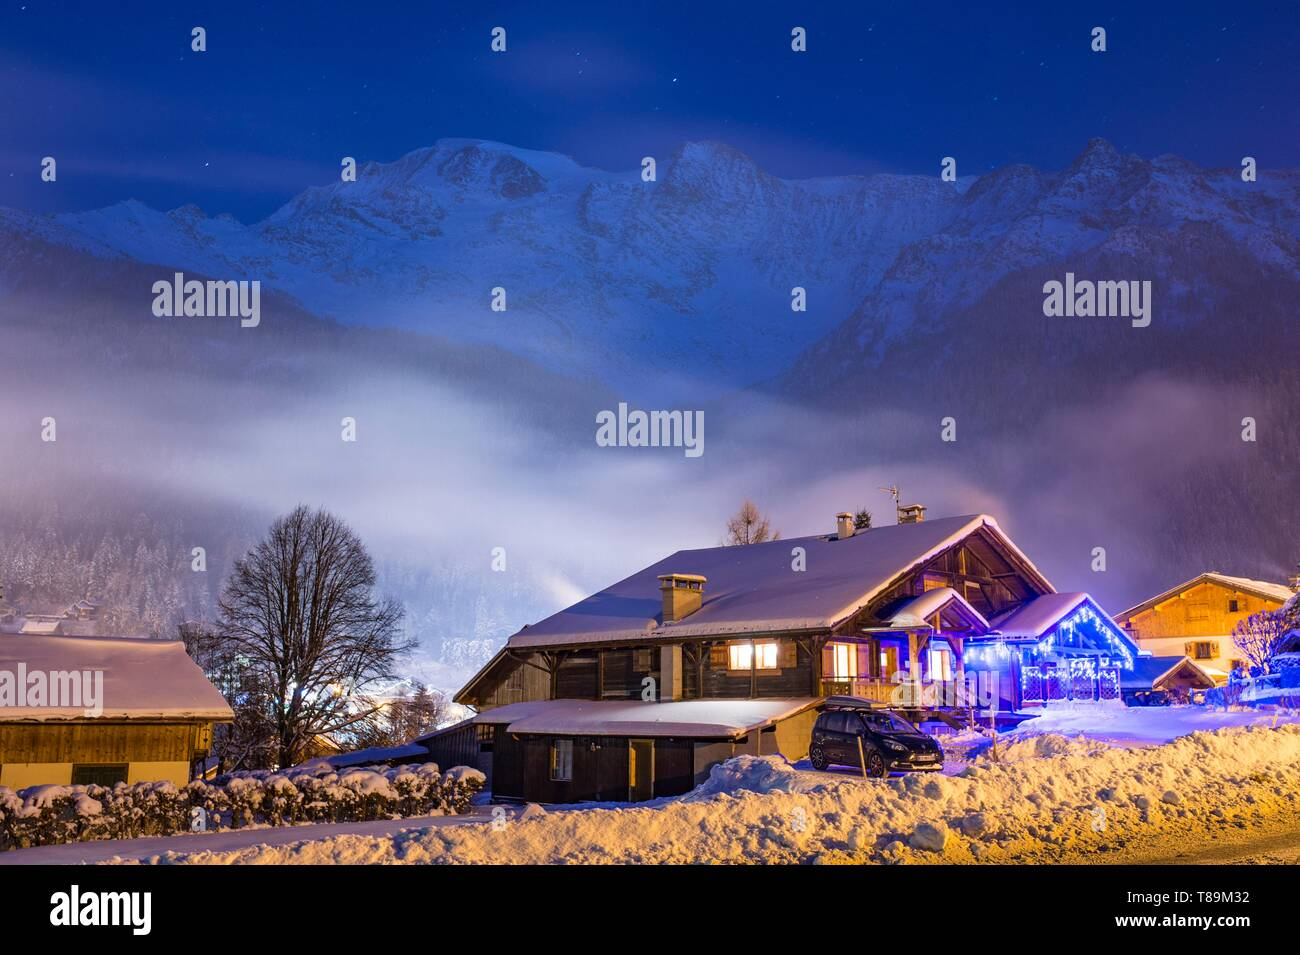 France, Haute Savoie, Massif of the Mont Blanc, the Contamines Montjoie, twilight on a chalet lit of the station and the domes of Miage - Stock Image